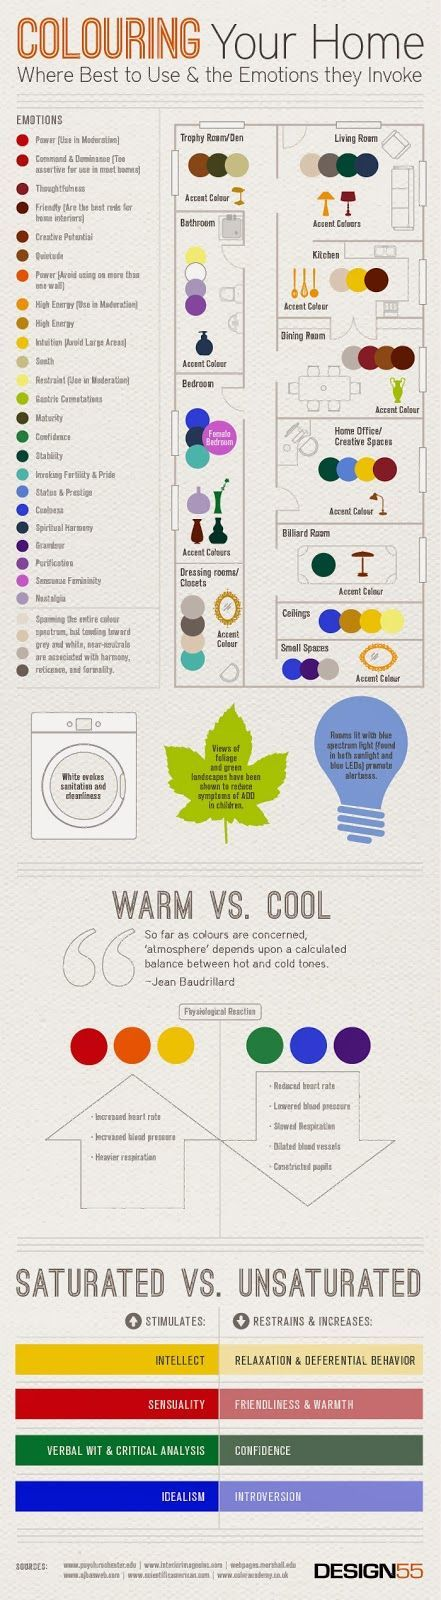 Patti Friday: The Interior Design Guide to Colouring Your Home: Infographic